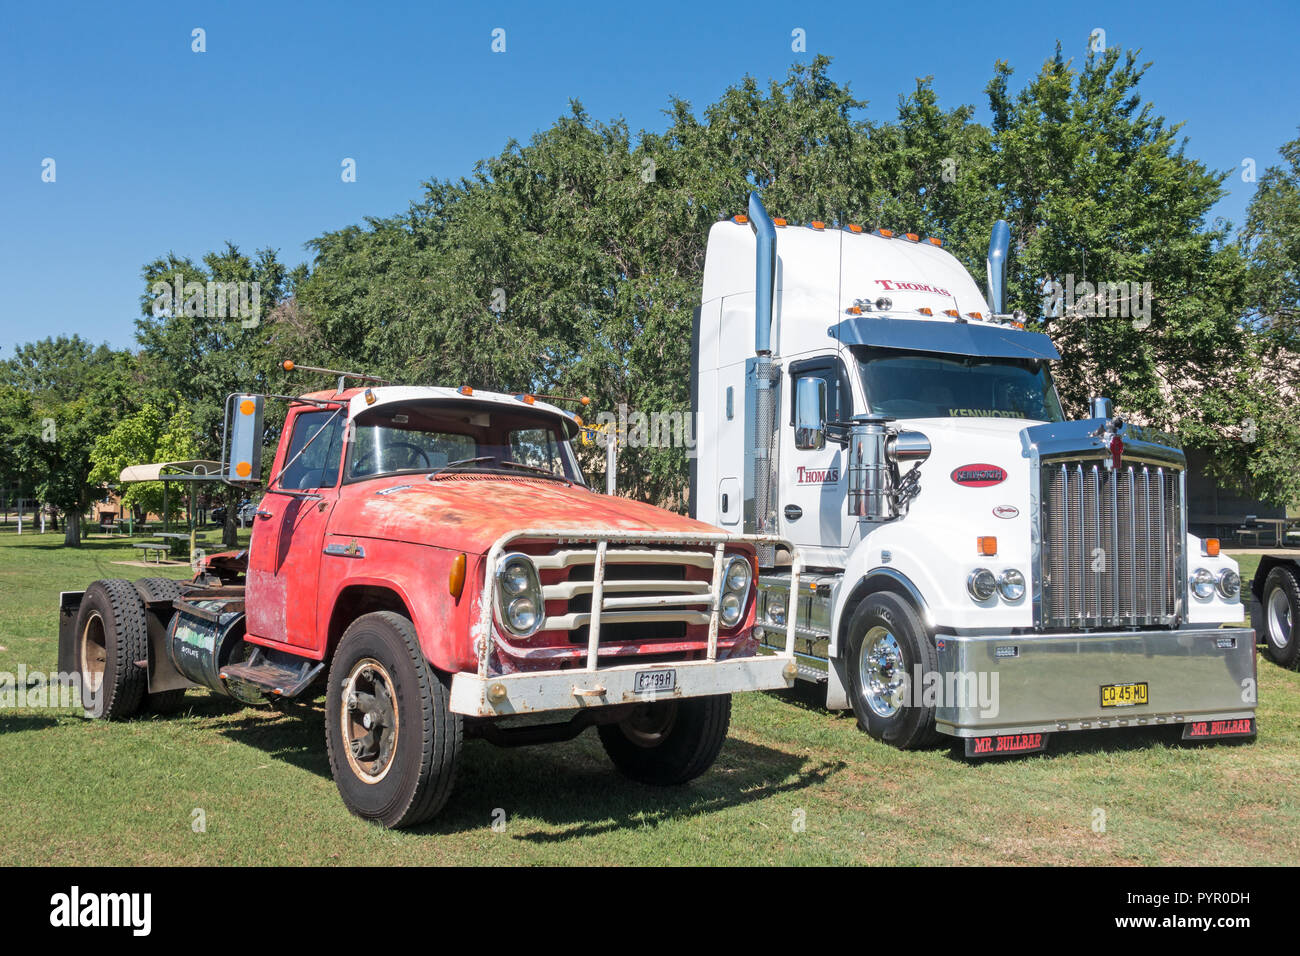 Old and new trucks. International AB 180 and a long nose Kenworth. - Stock Image